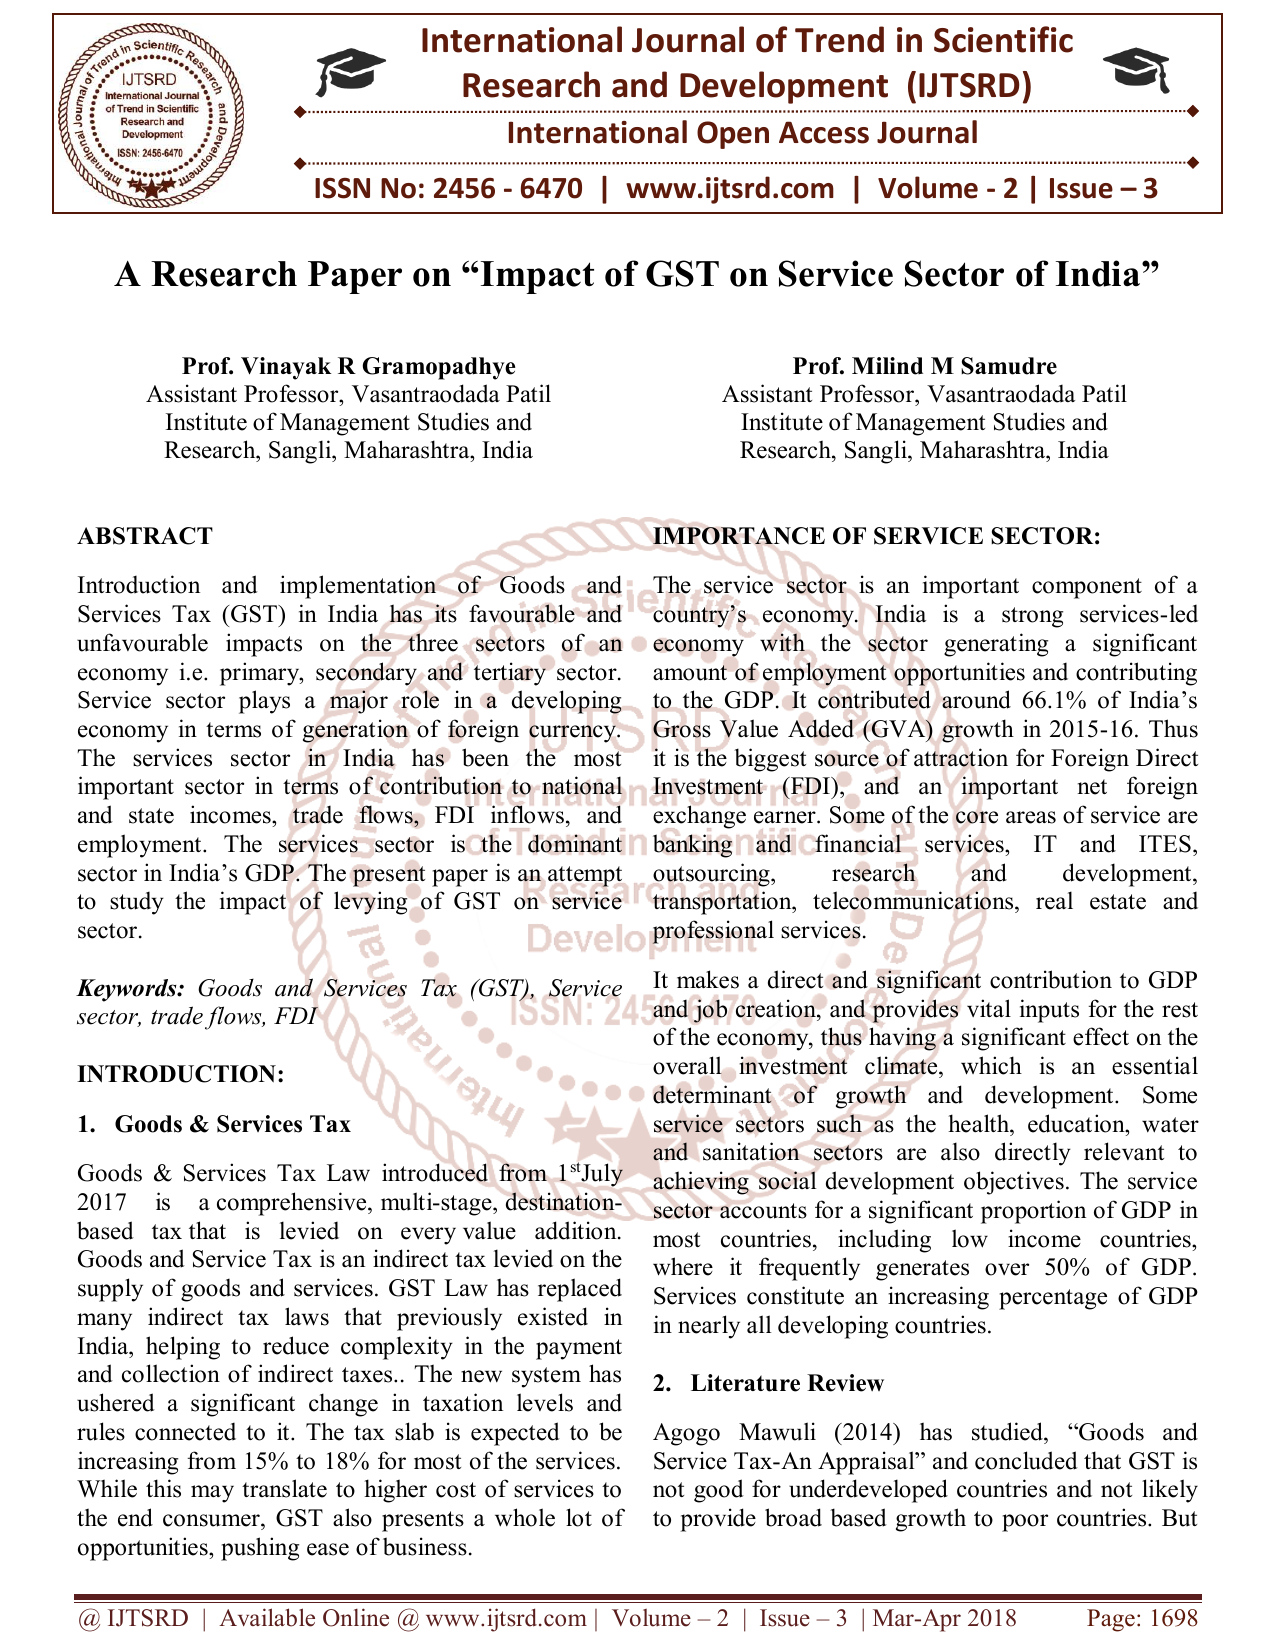 Research paper on service sector